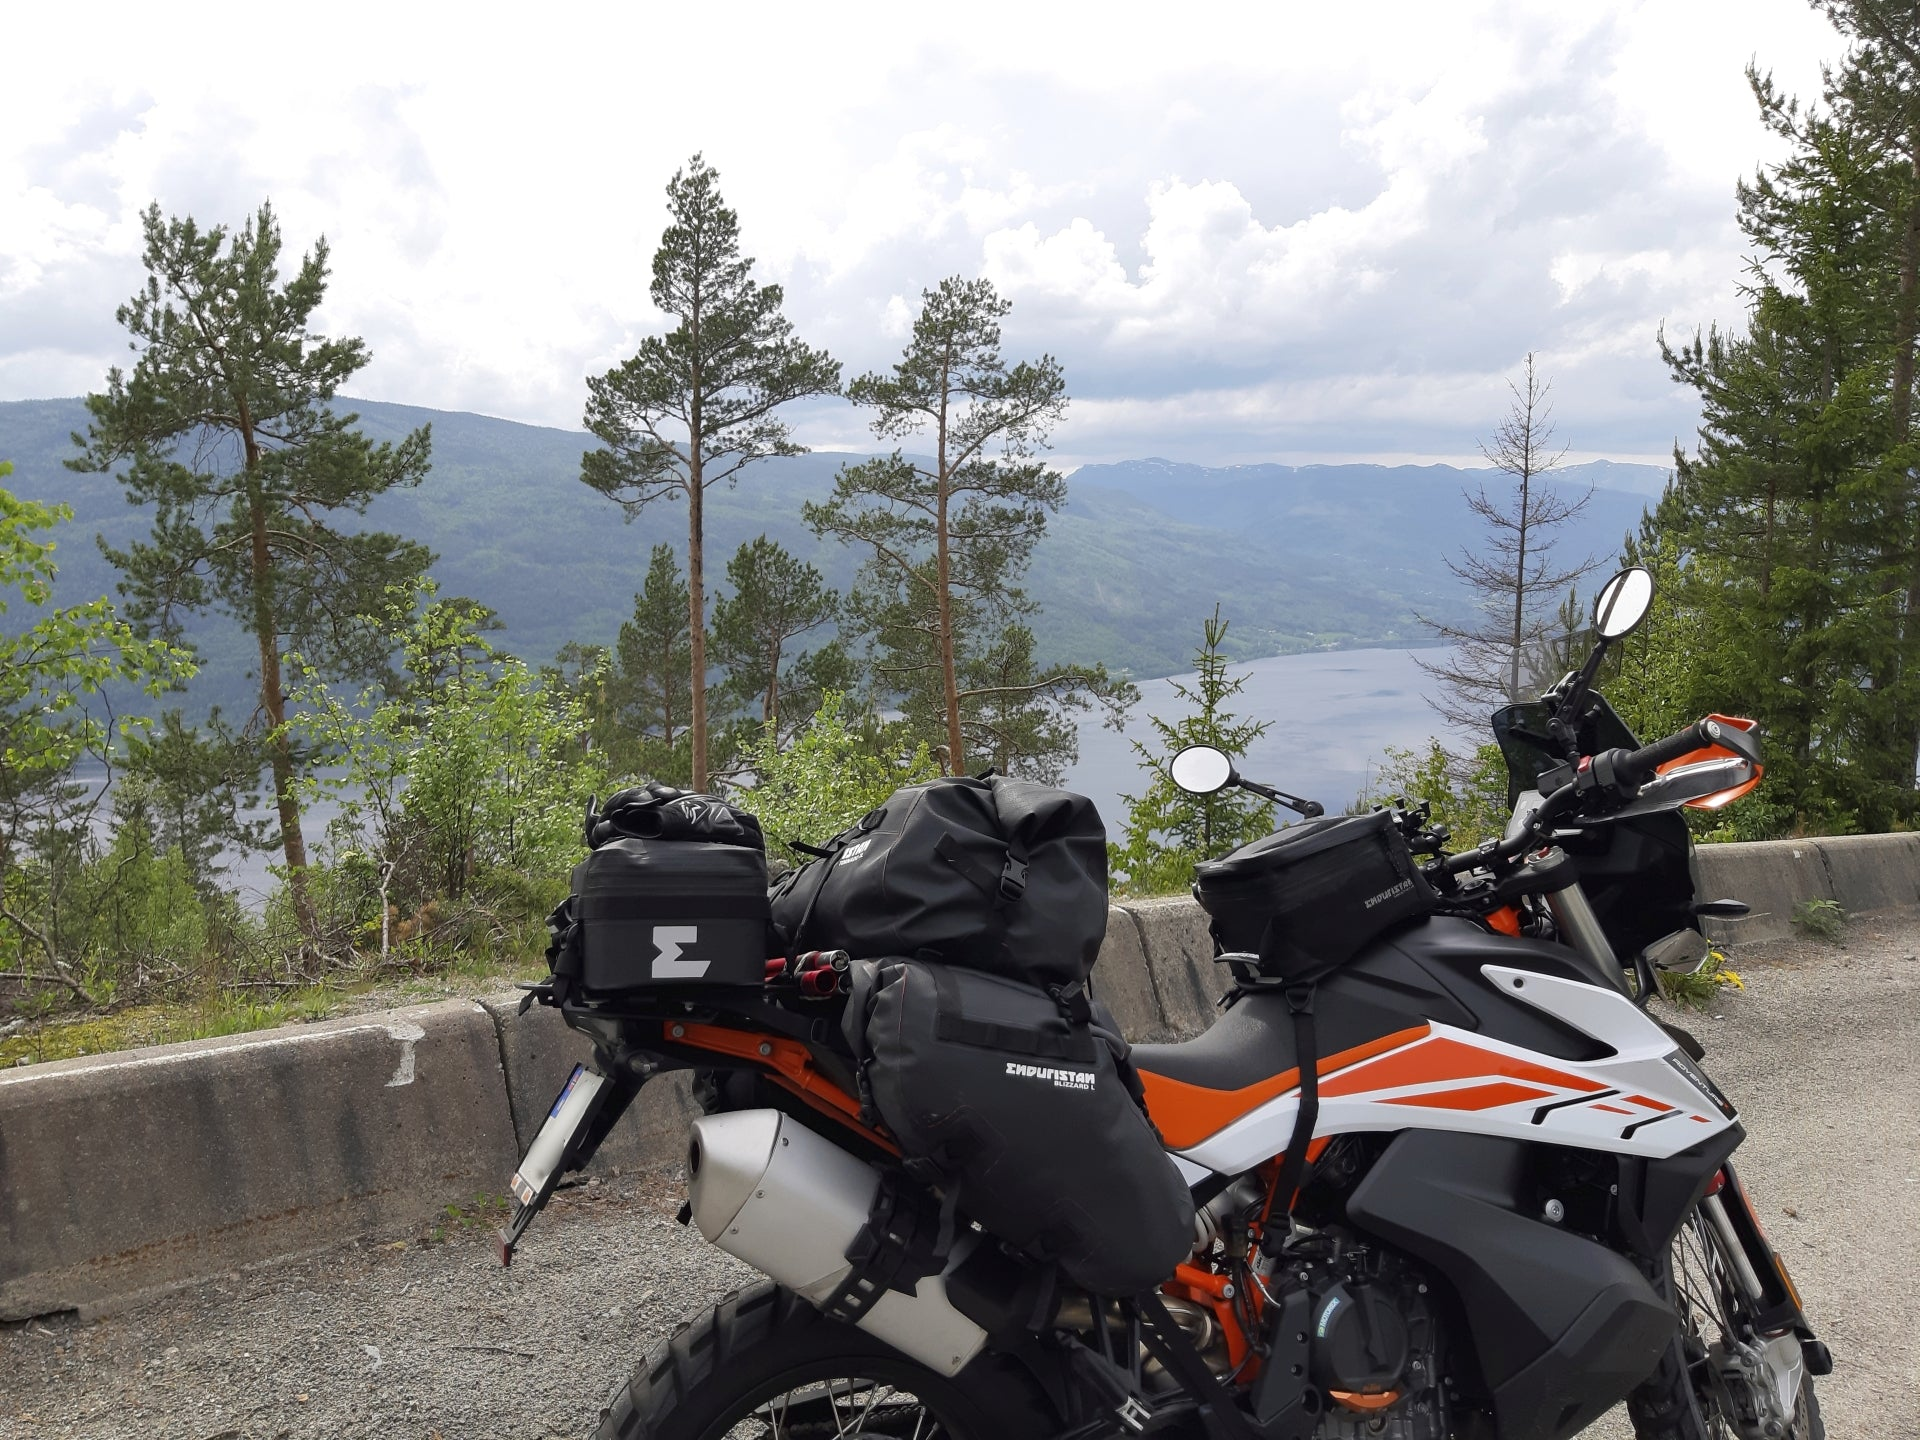 KTM 790 Adventure R with Perun moto rack and Enduristan luggage